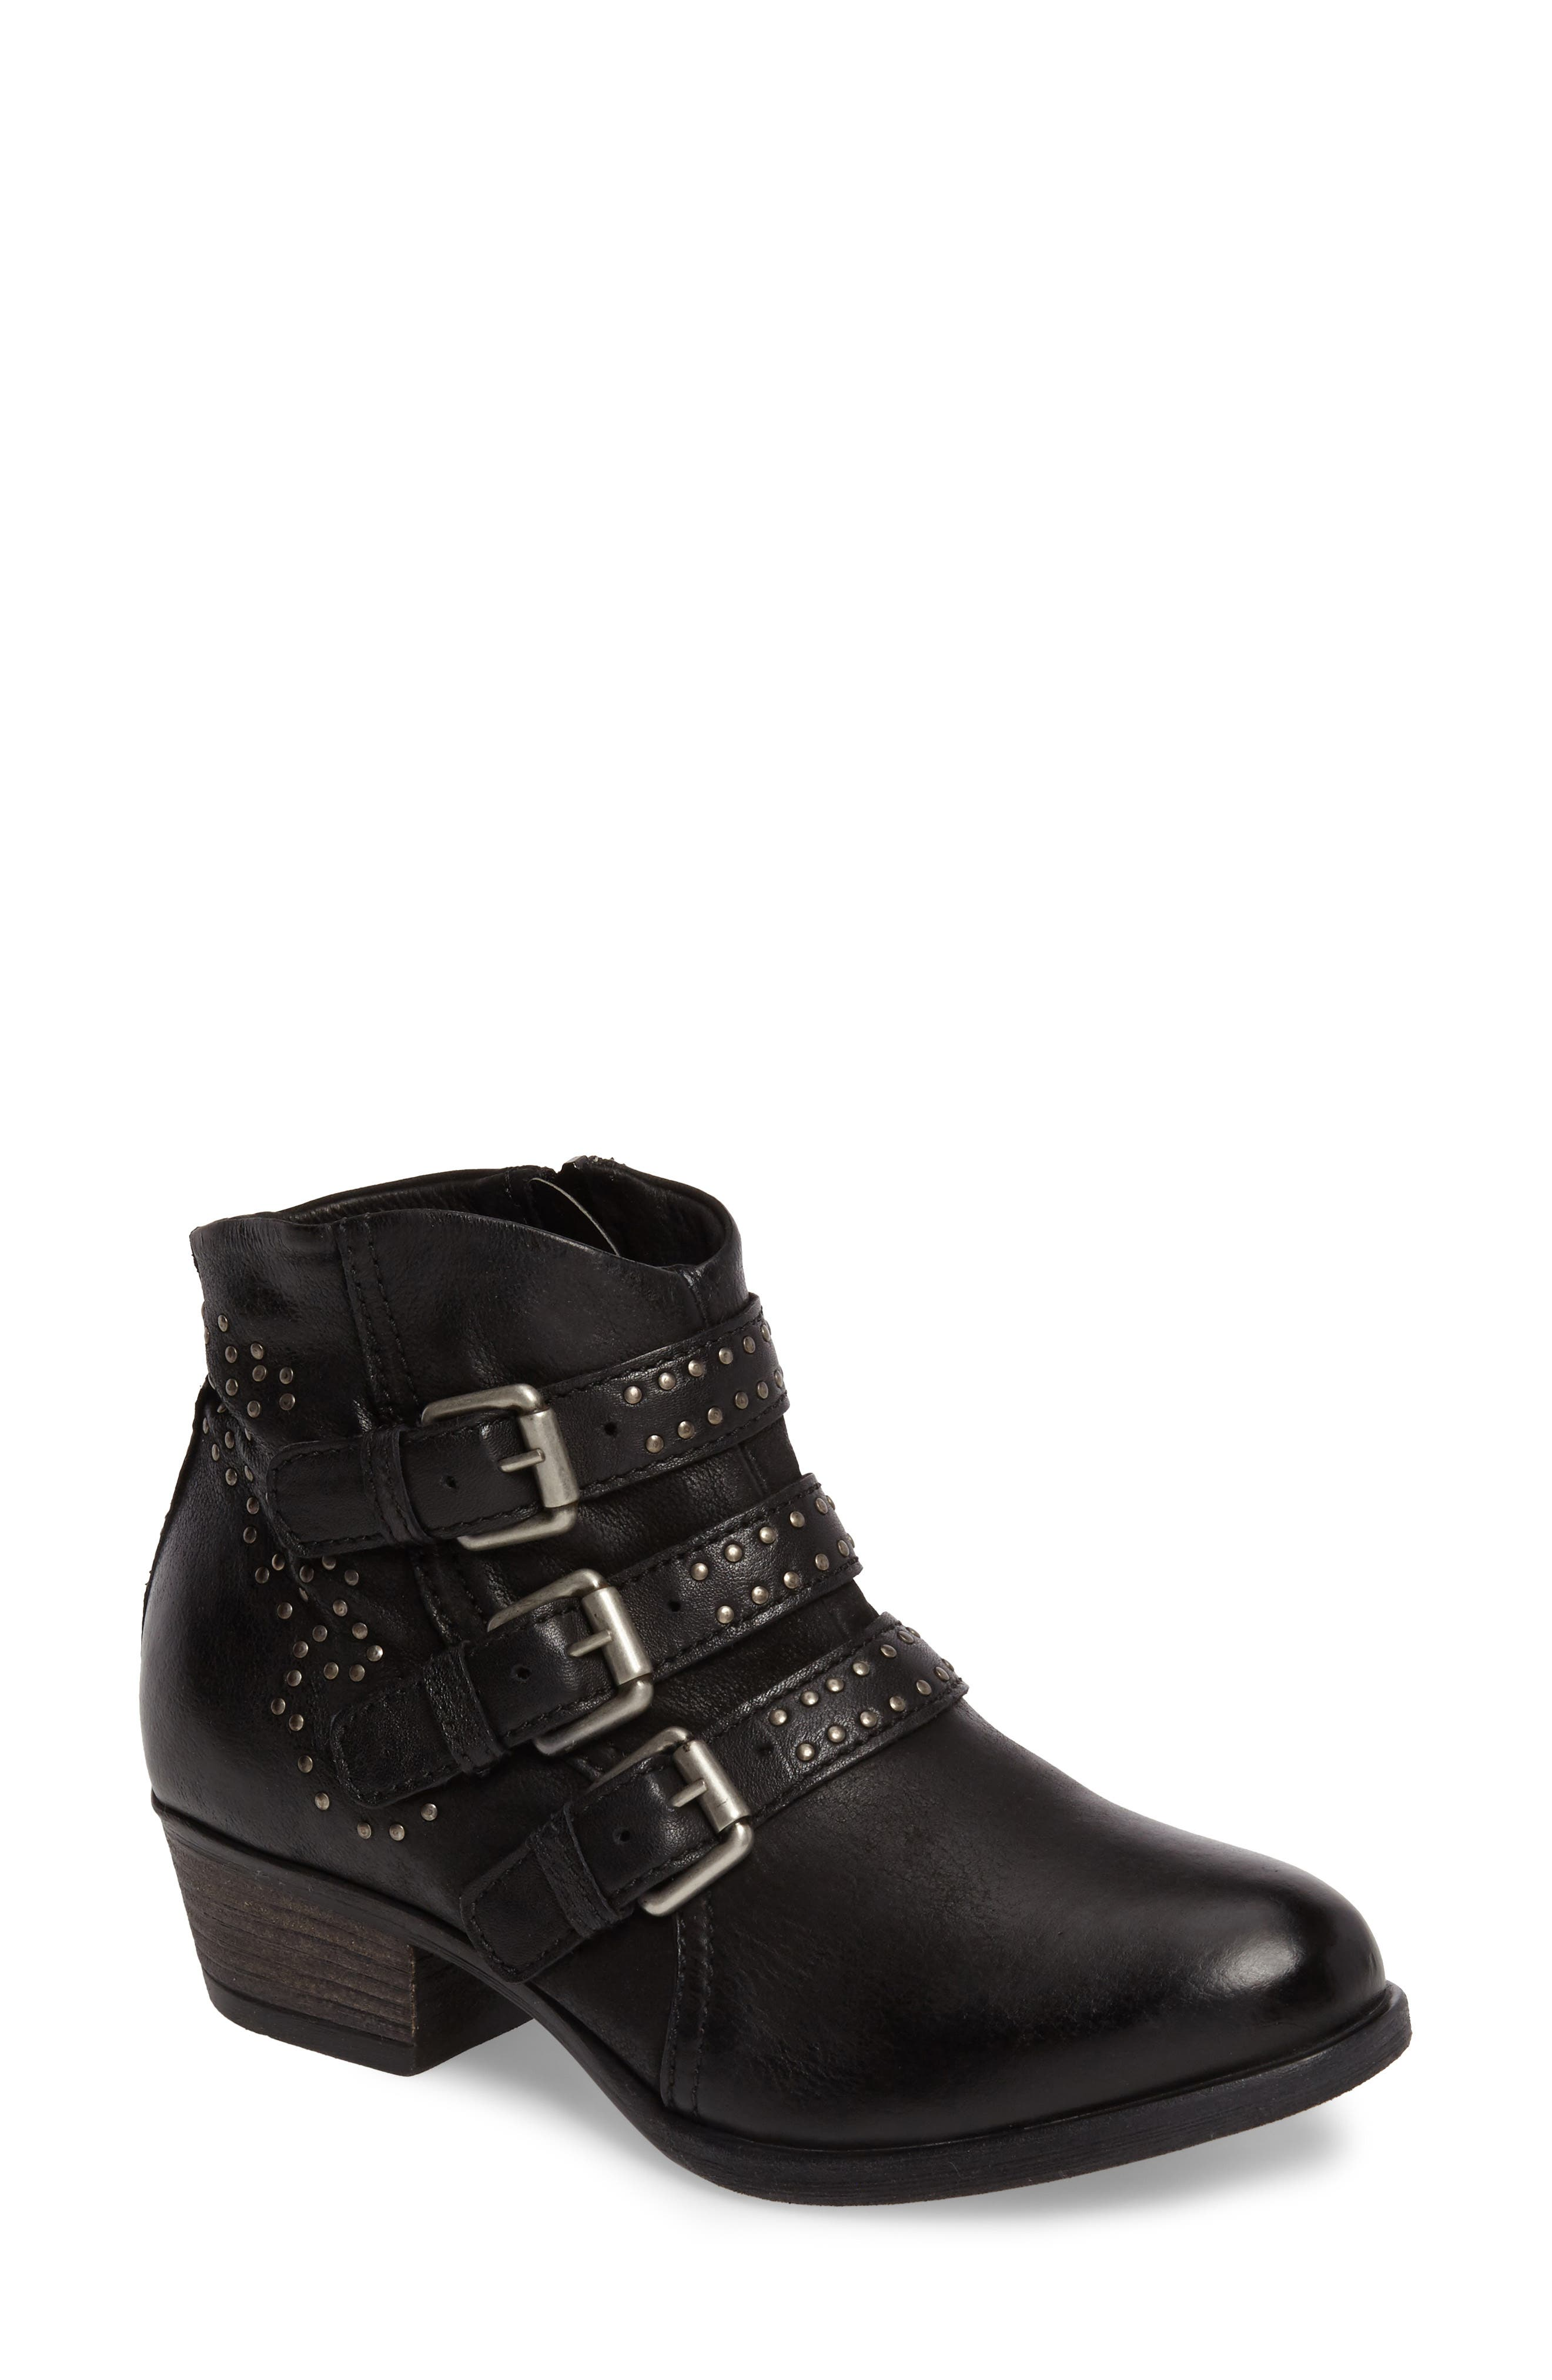 Barclay Studded Moto Bootie,                             Main thumbnail 1, color,                             001